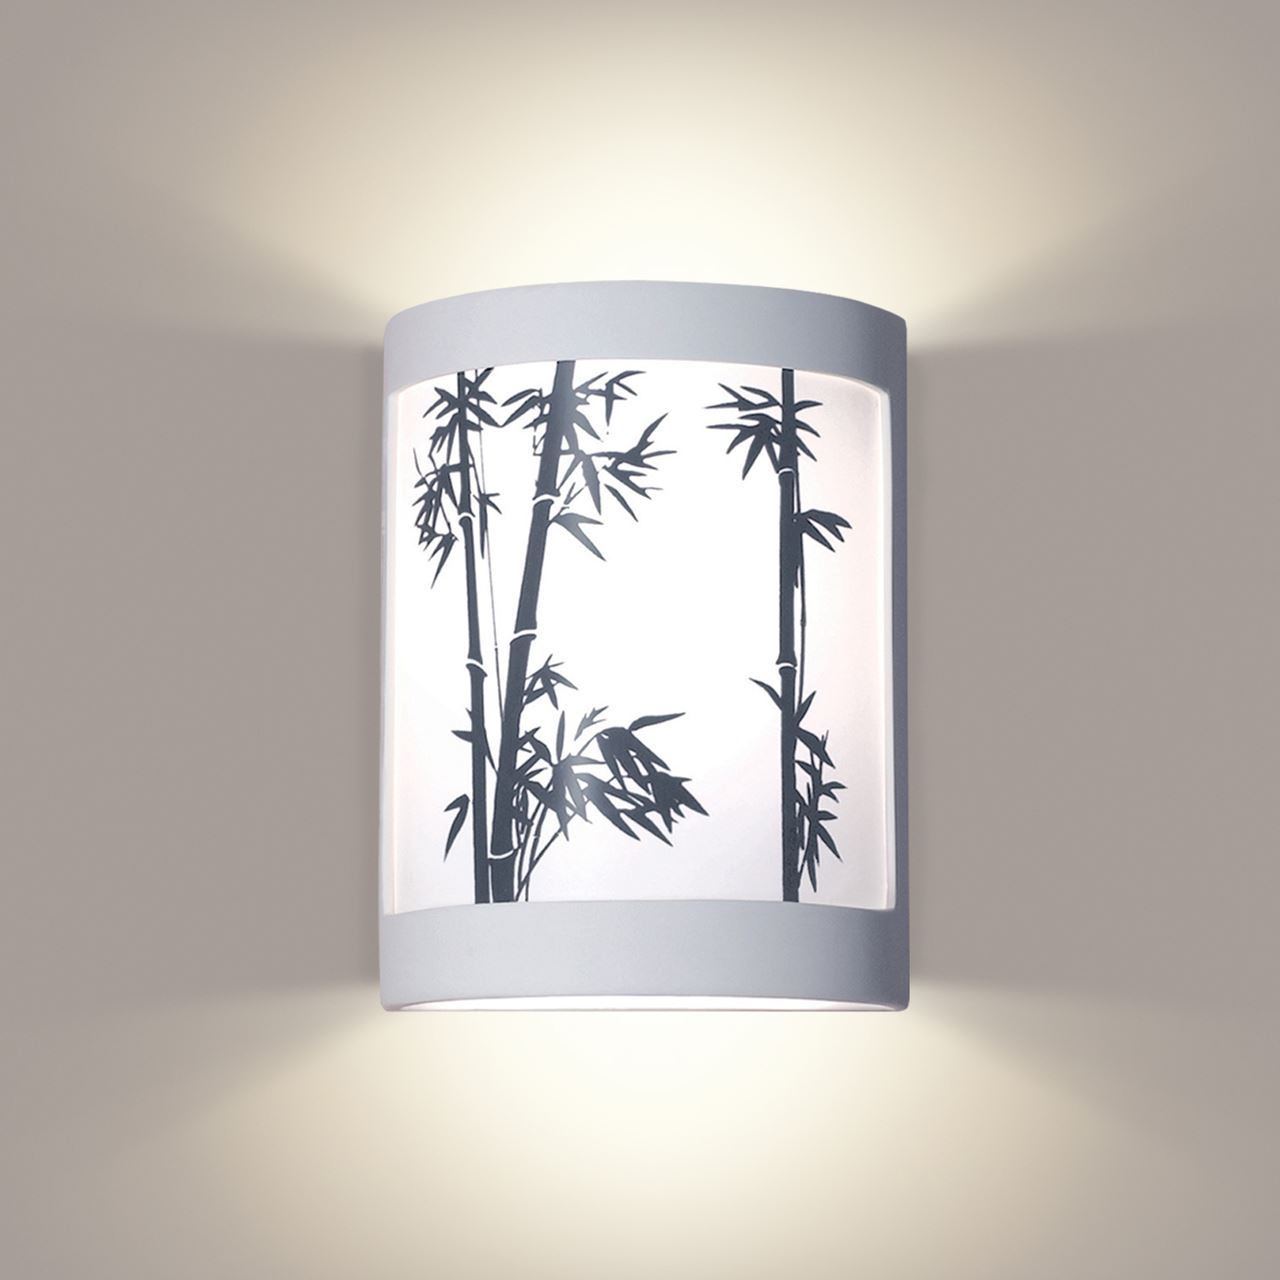 Picture of A19 Ceramic Wall Sconce | Konishi